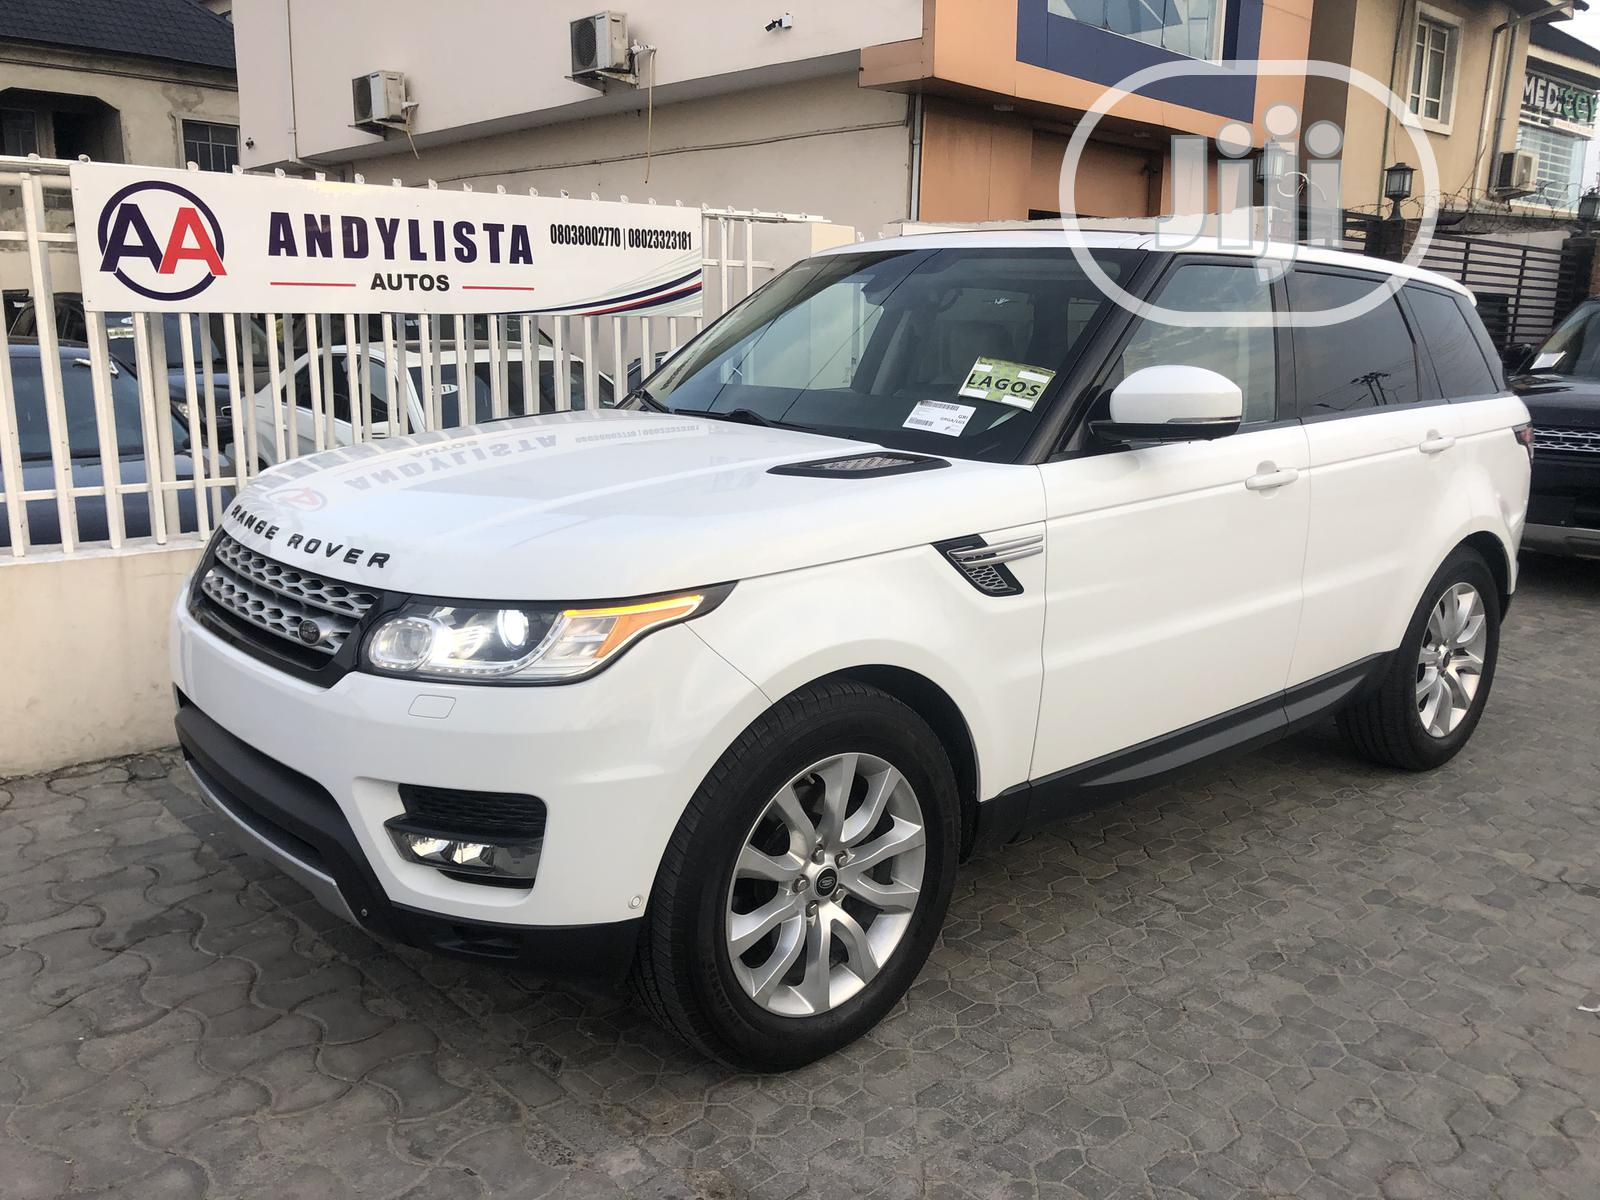 Land Rover Range Rover Sport 2014 HSE 4x4 (3.0L 6cyl 8A) White   Cars for sale in Lekki, Lagos State, Nigeria